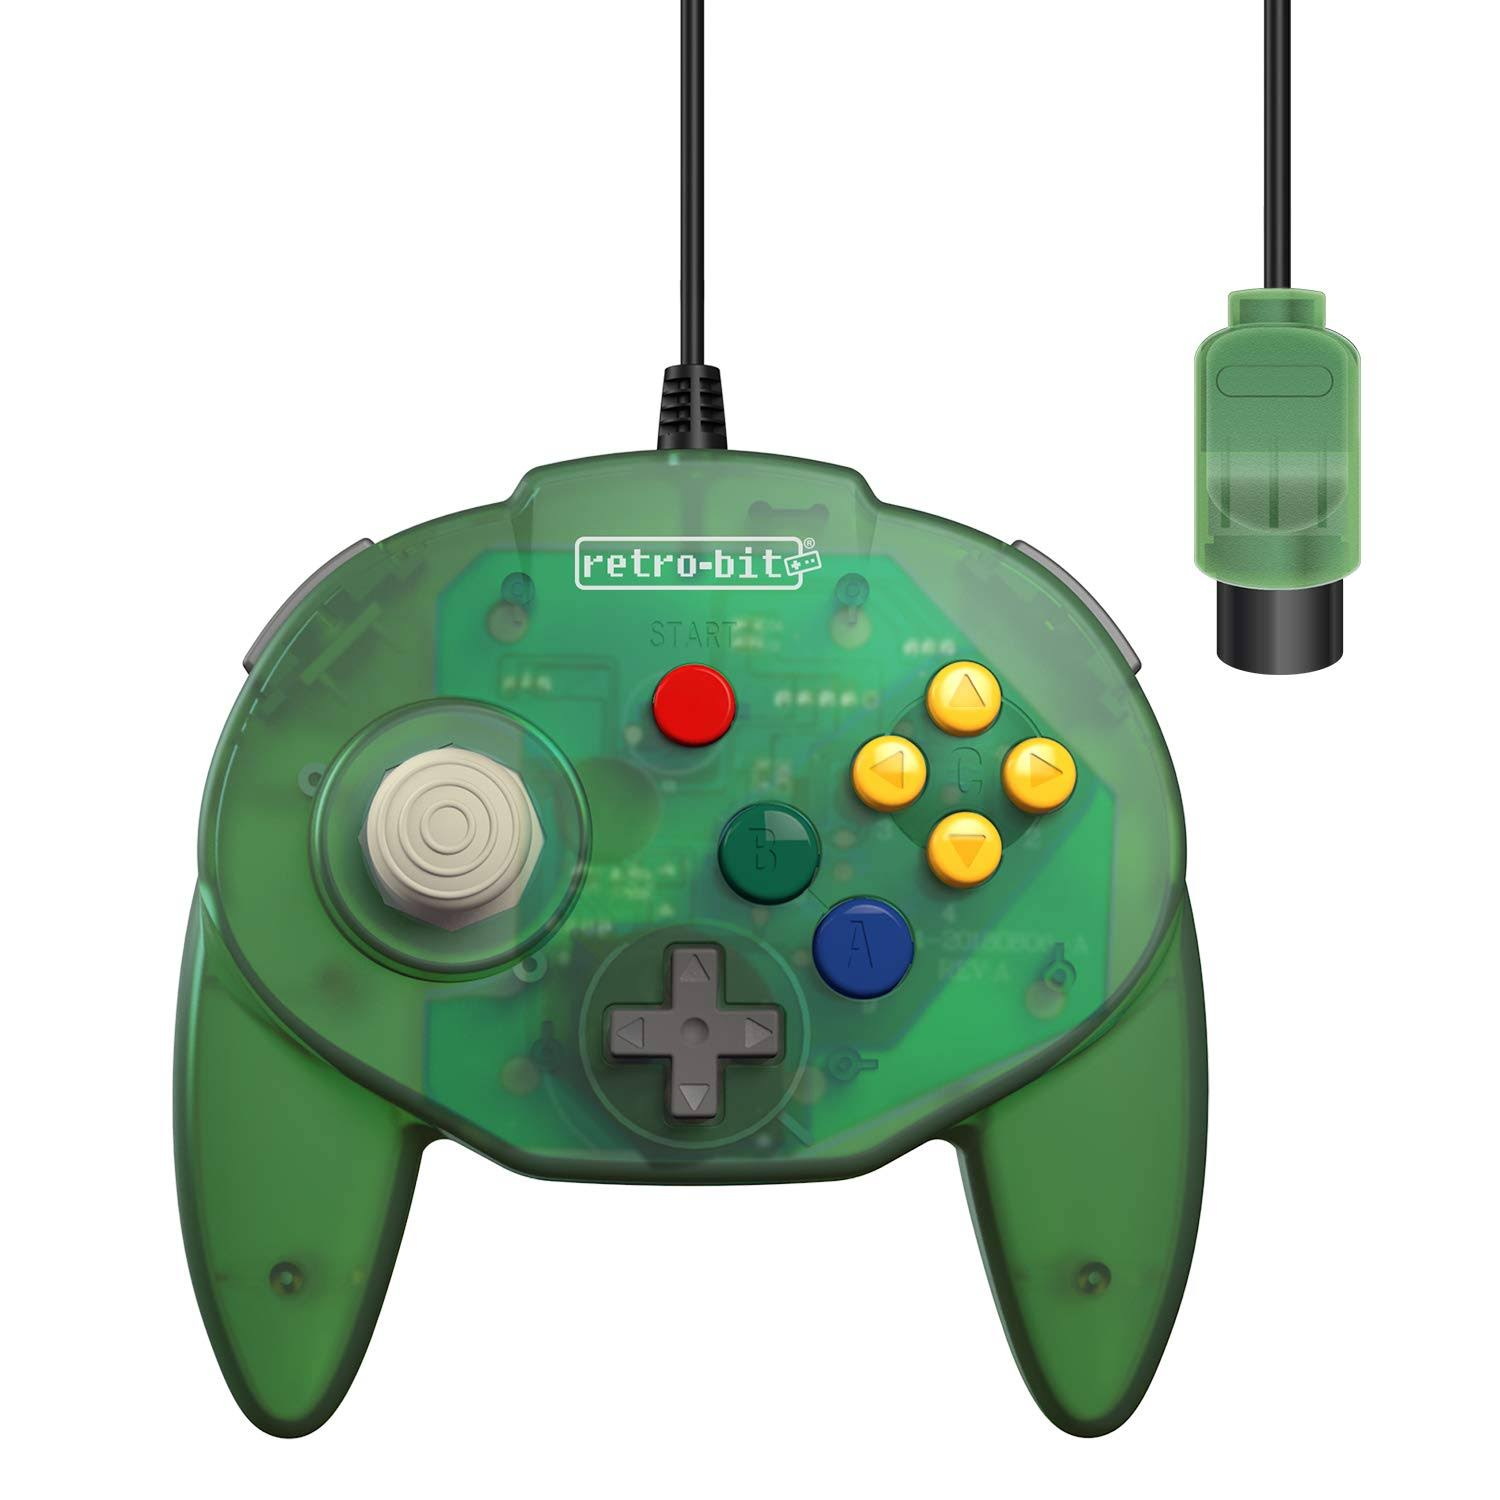 Retro-bit Tribute 64 Controller for Nintendo N64 - Original Port - Forest Green